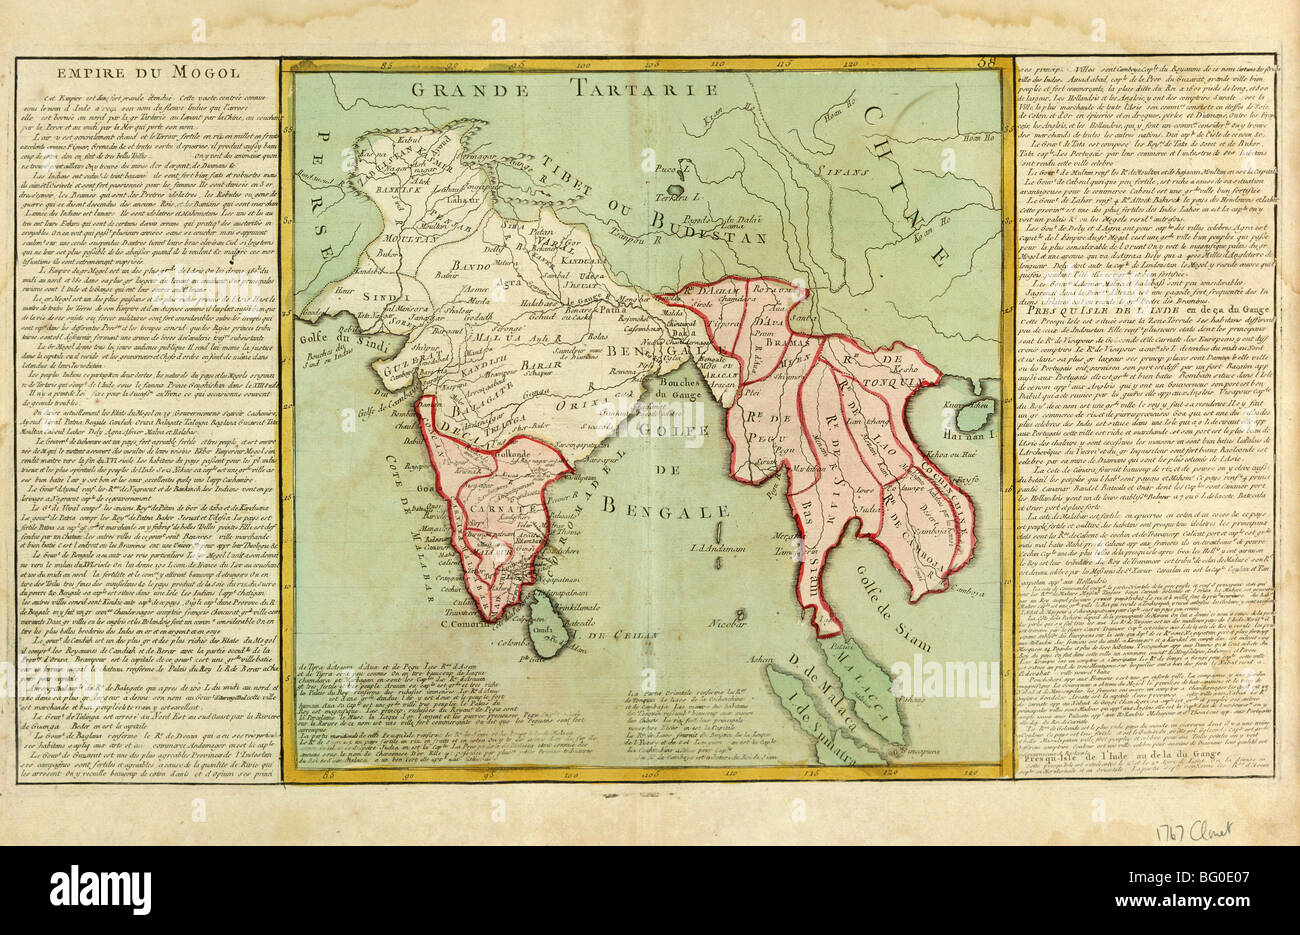 Old Map of India and Southeast Asia, Asia - Stock Image